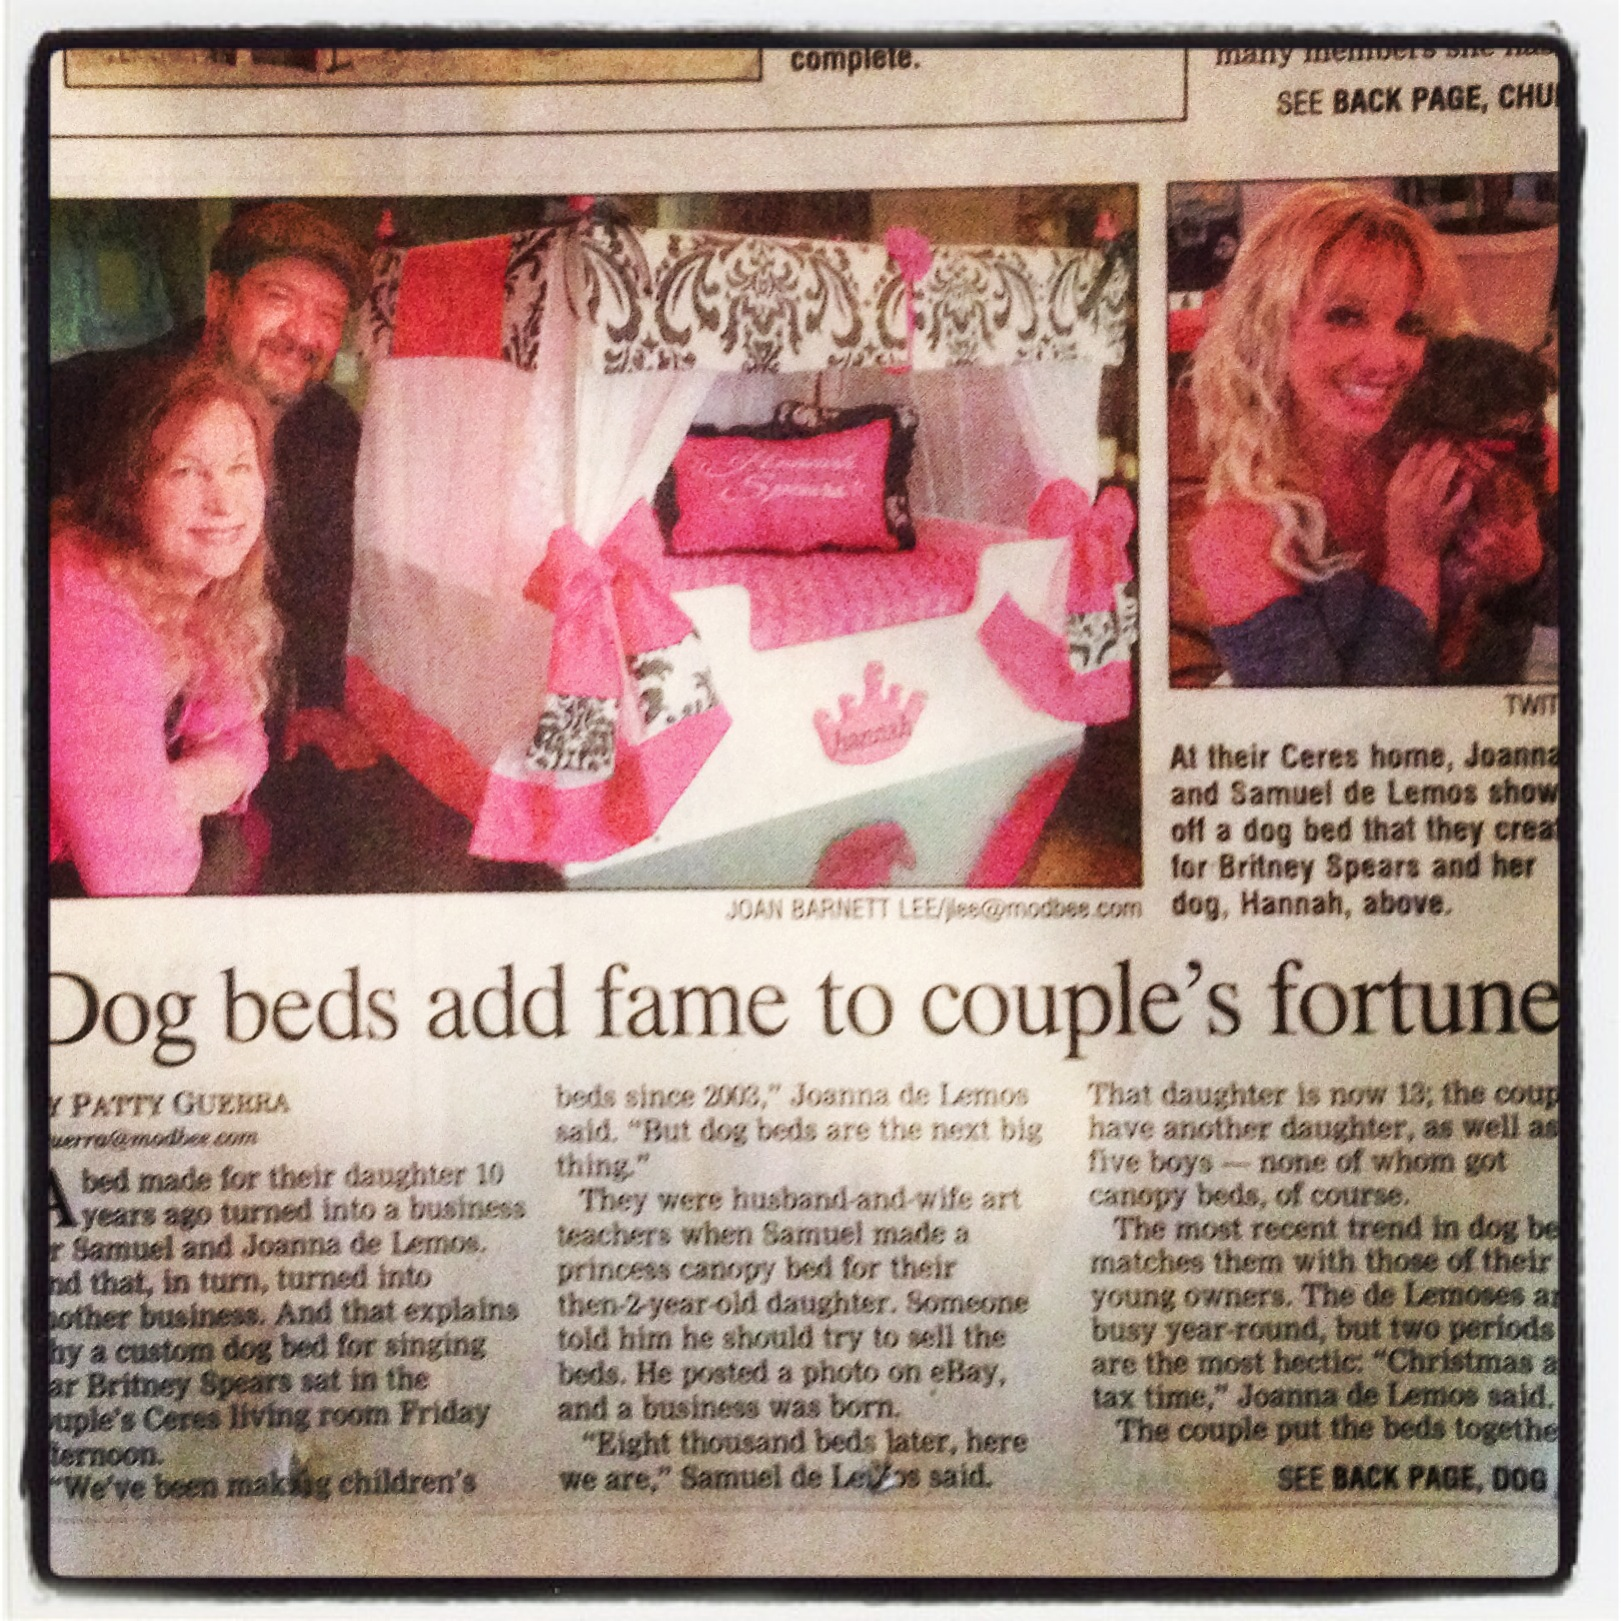 More News Coverage; Hannah Spears Bed